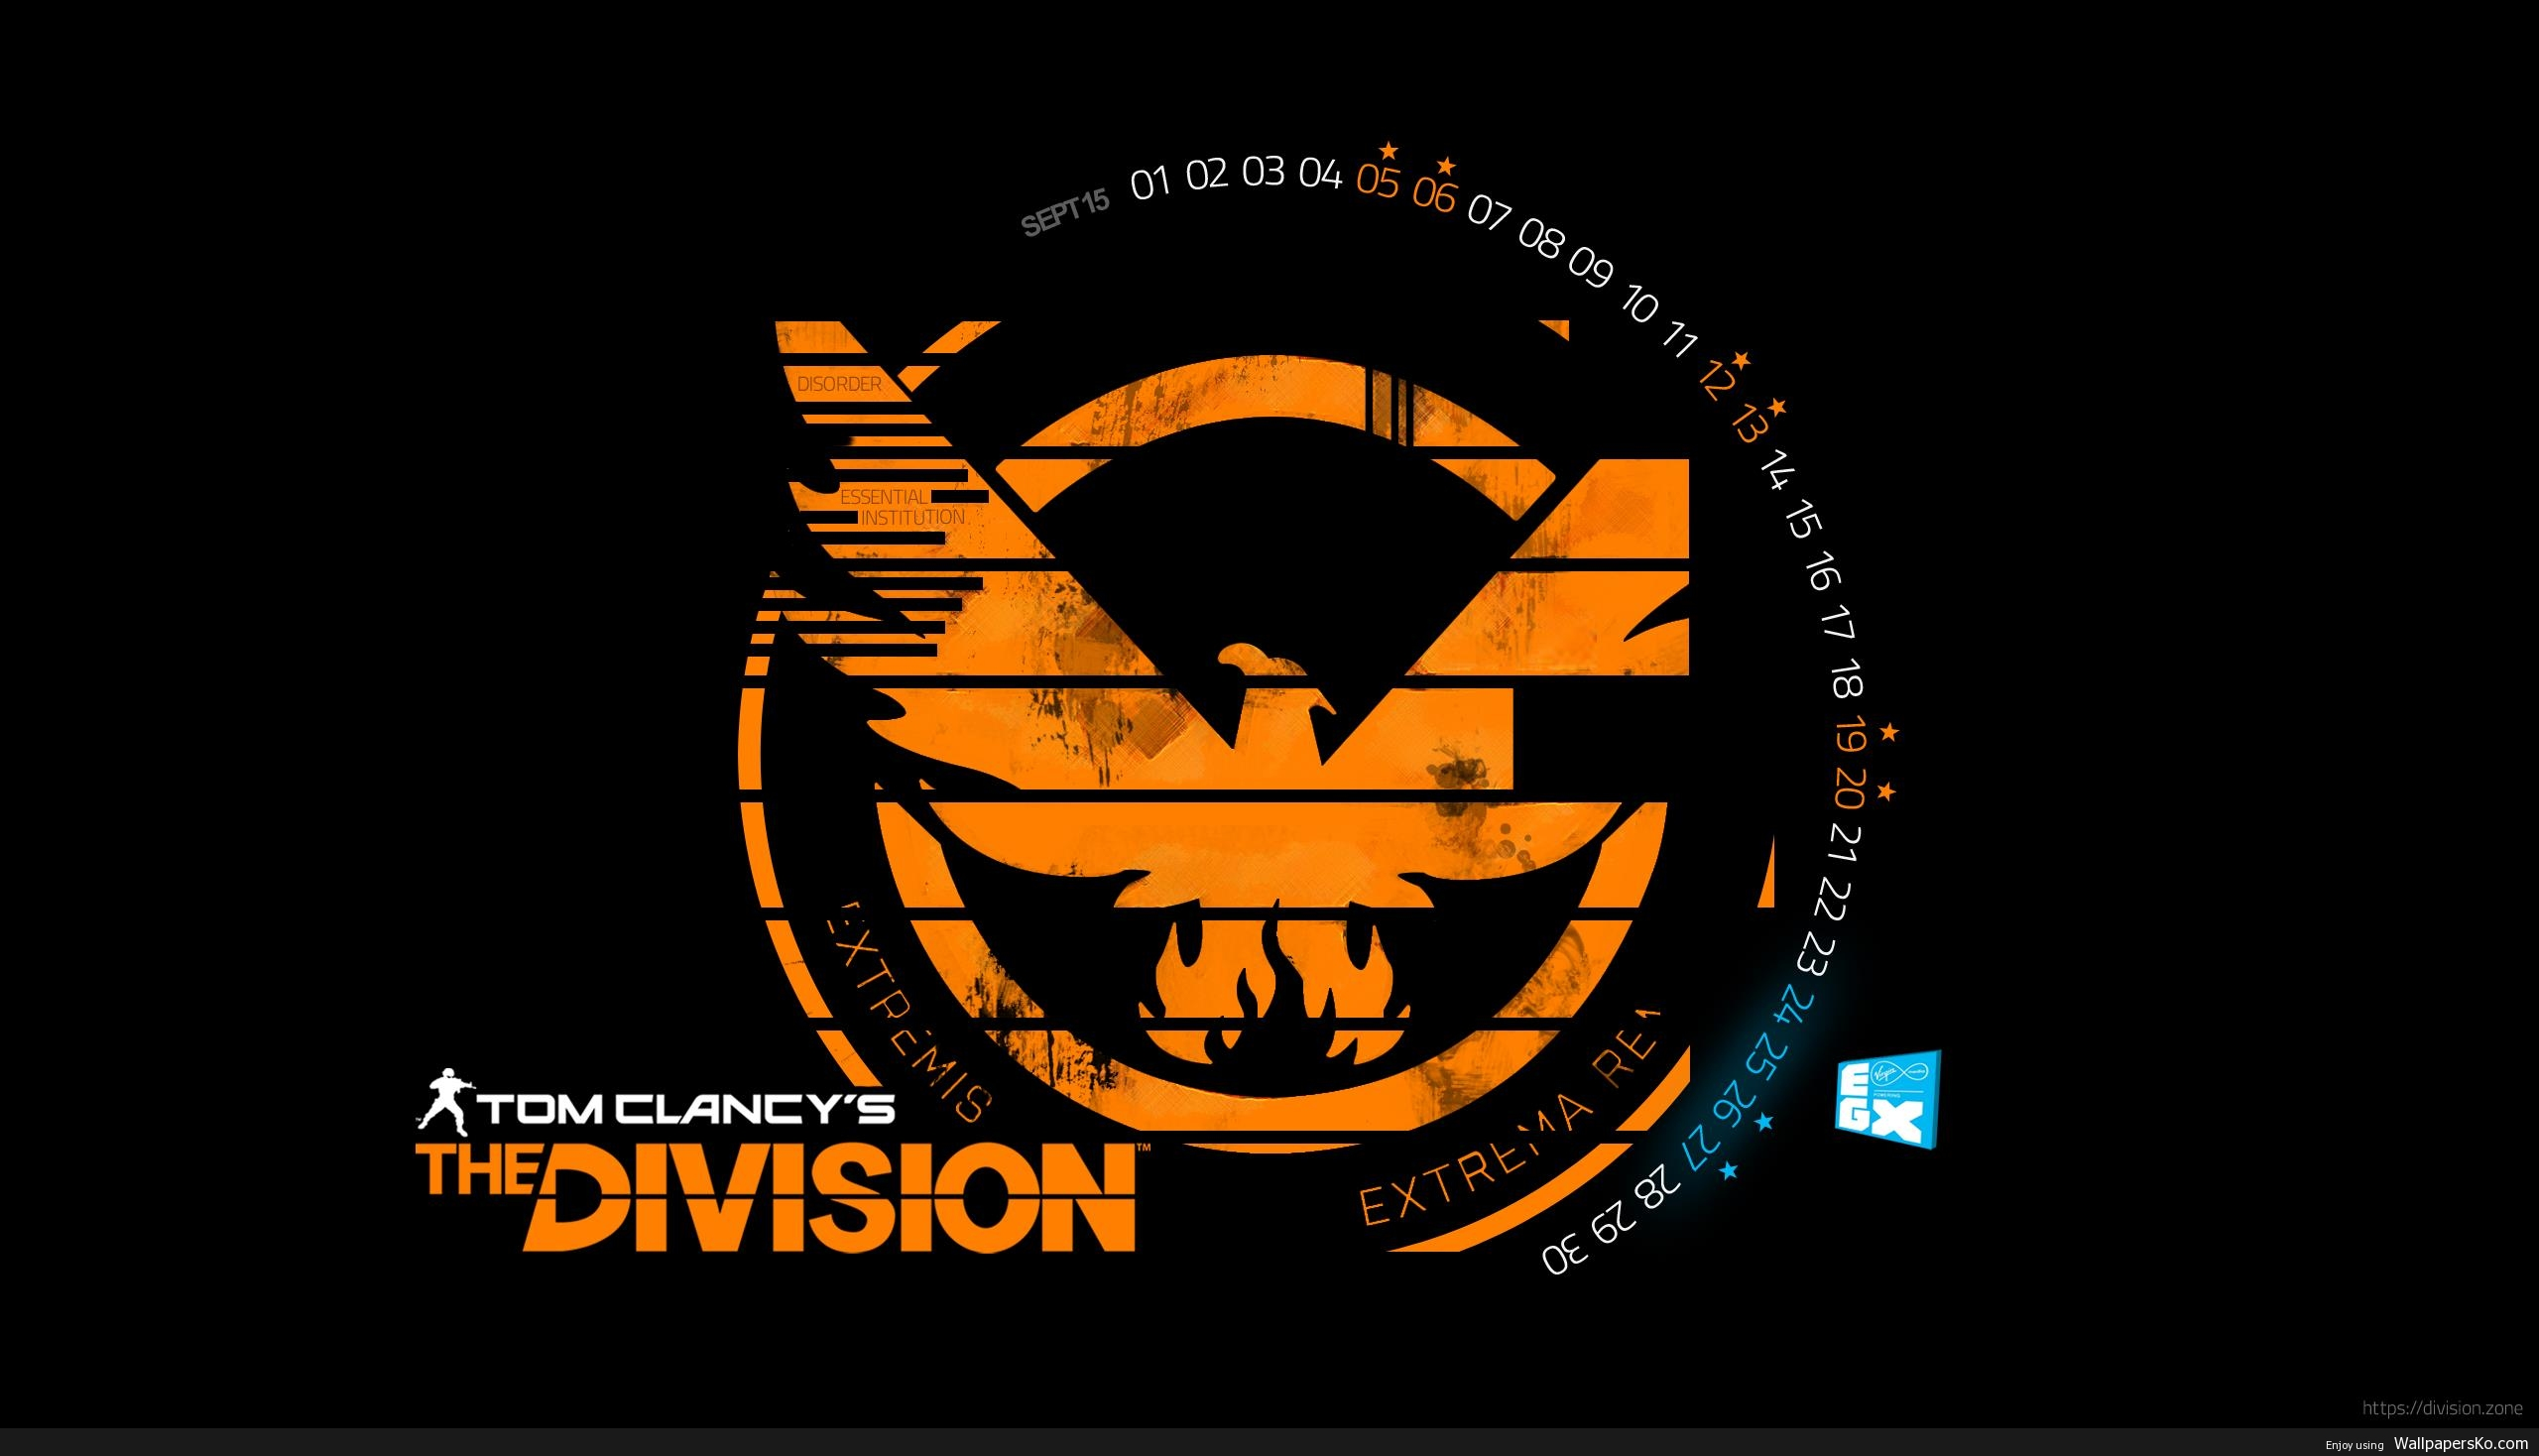 The Division Wallpaper Logo Hd Wallpapers Download